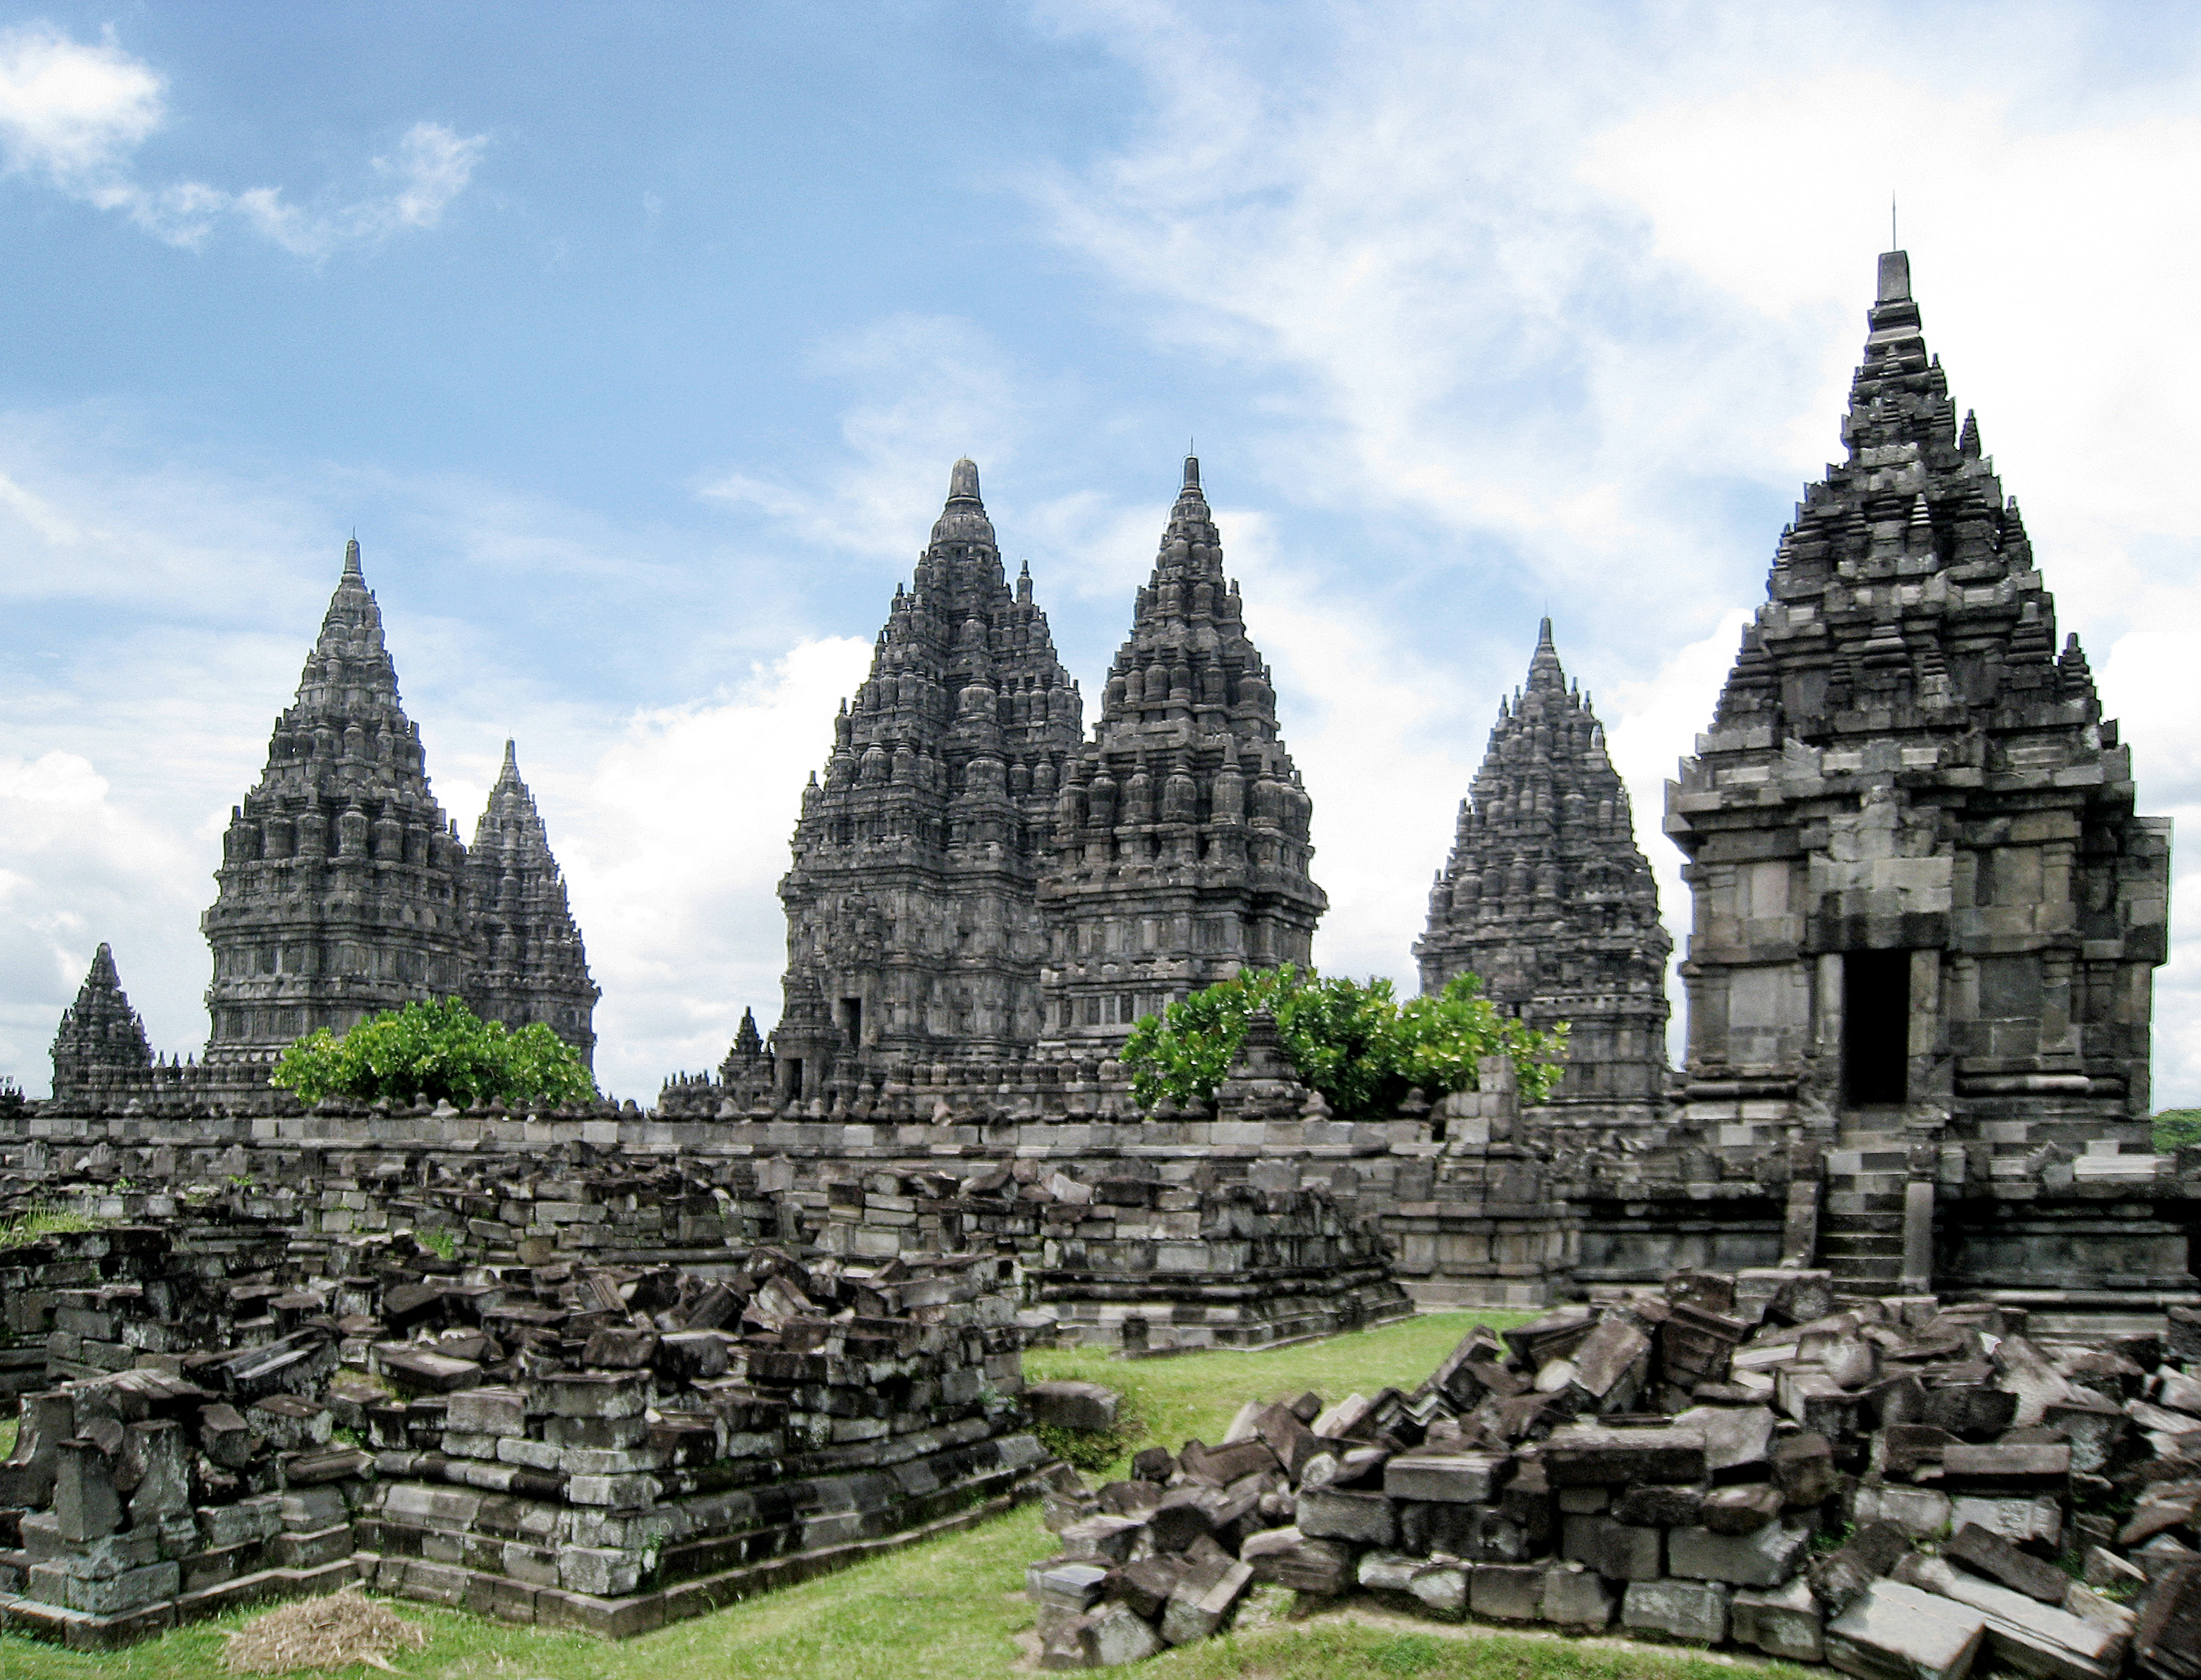 Candi Indonesia Wikipedia Towering Prasada Temple Towers Believed Represent Cosmic